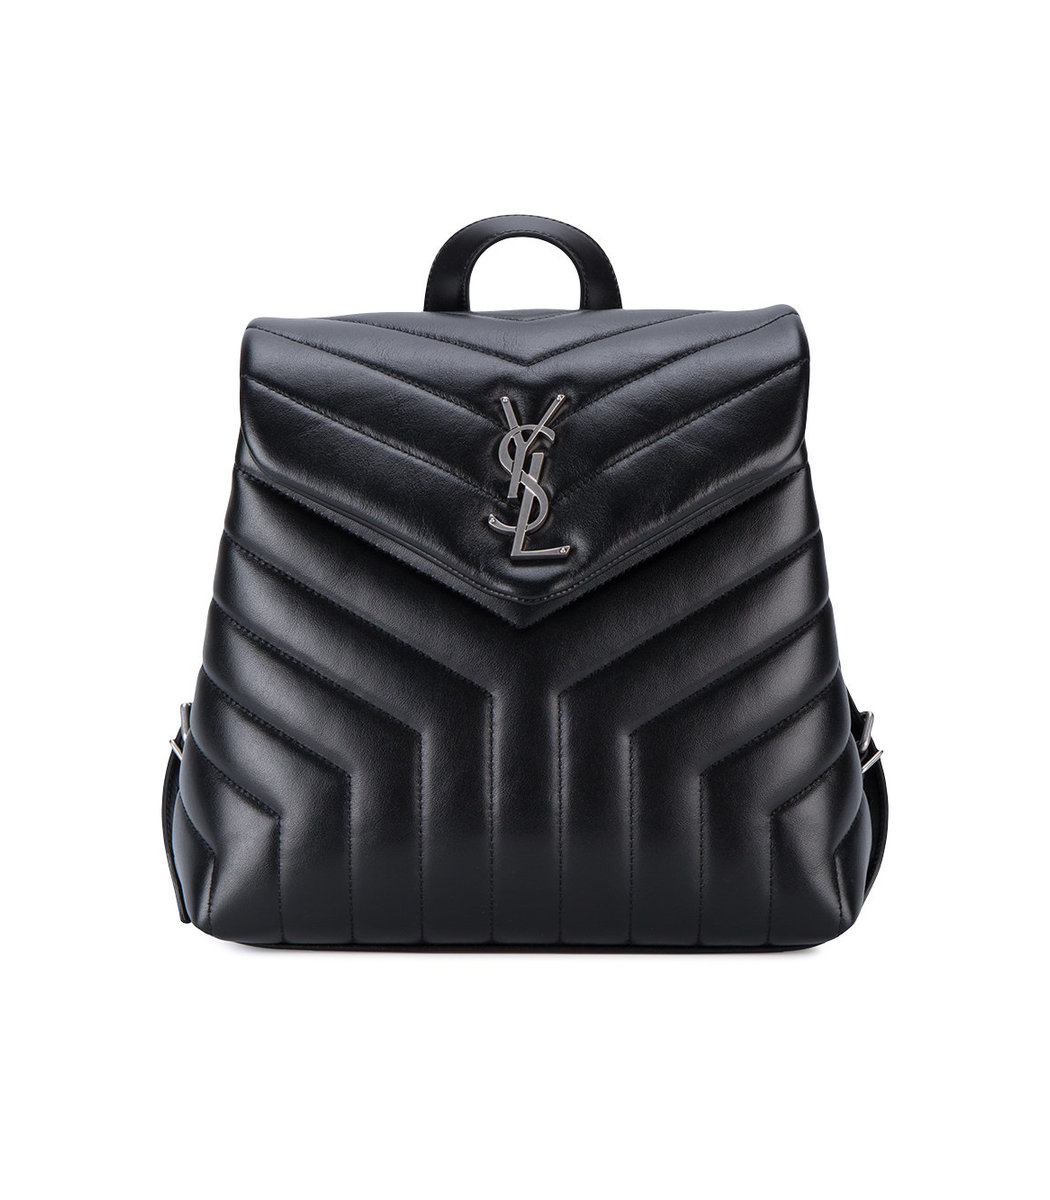 SAINT LAURENT Black Loulou Quilted Leather Backpack Bag